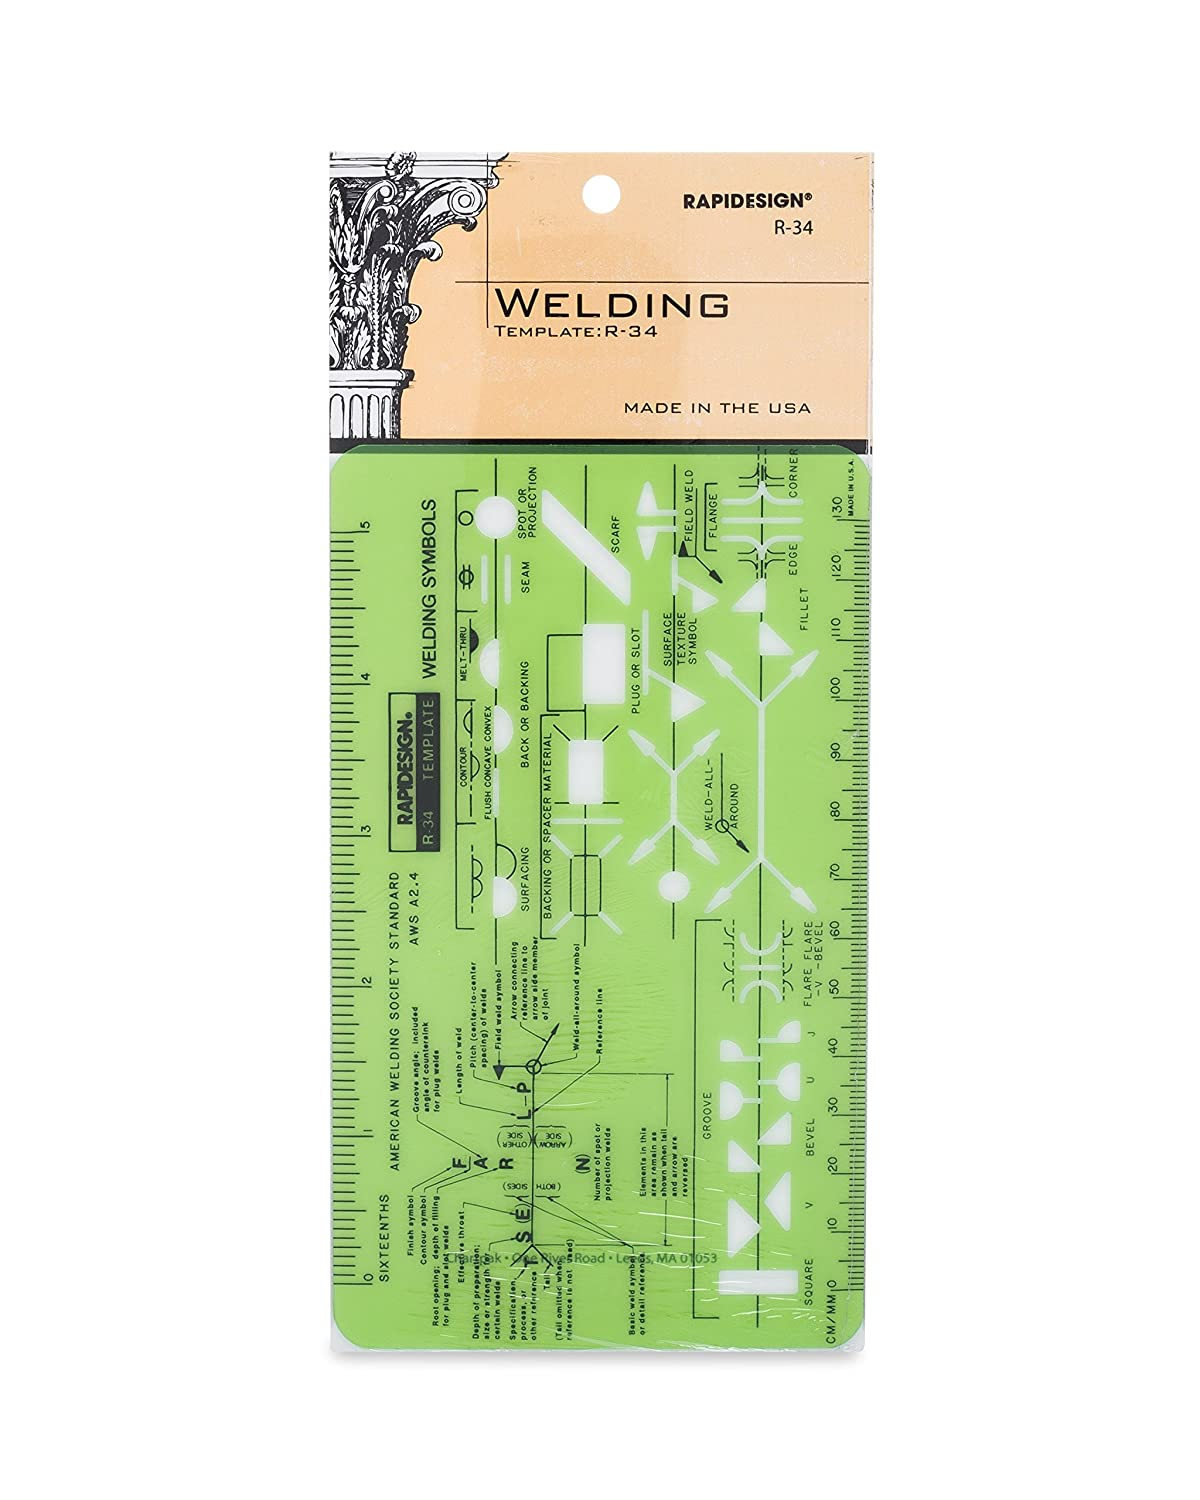 Amazon Rapidesign Welding Pocket Size Template 1 Each R34